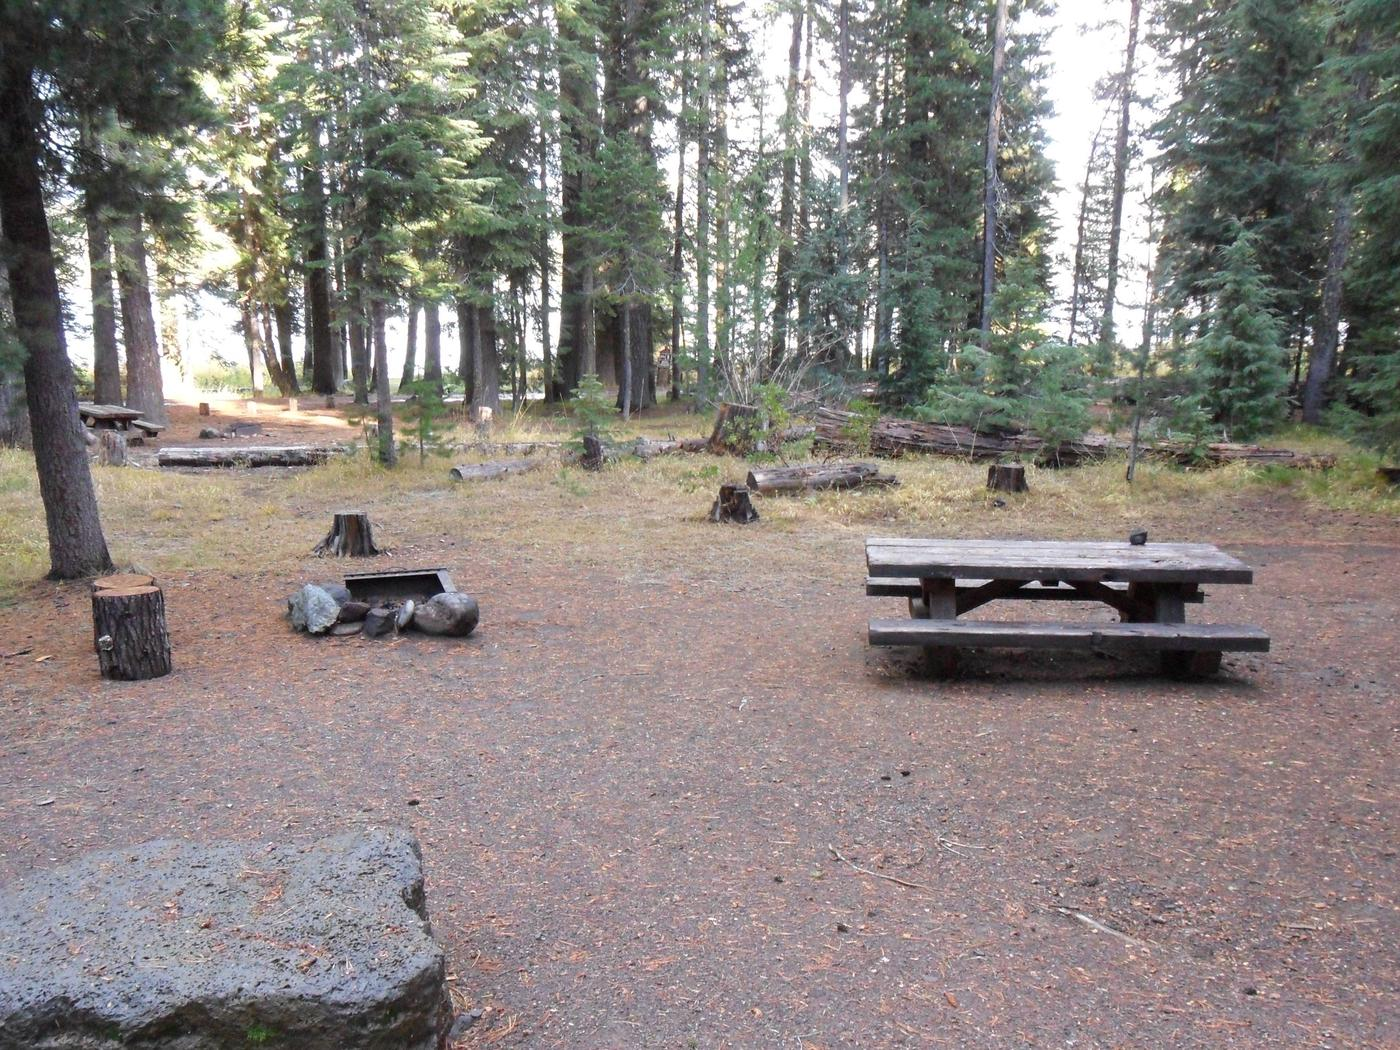 Flat campsite with one picnic table and fire ring.C-11